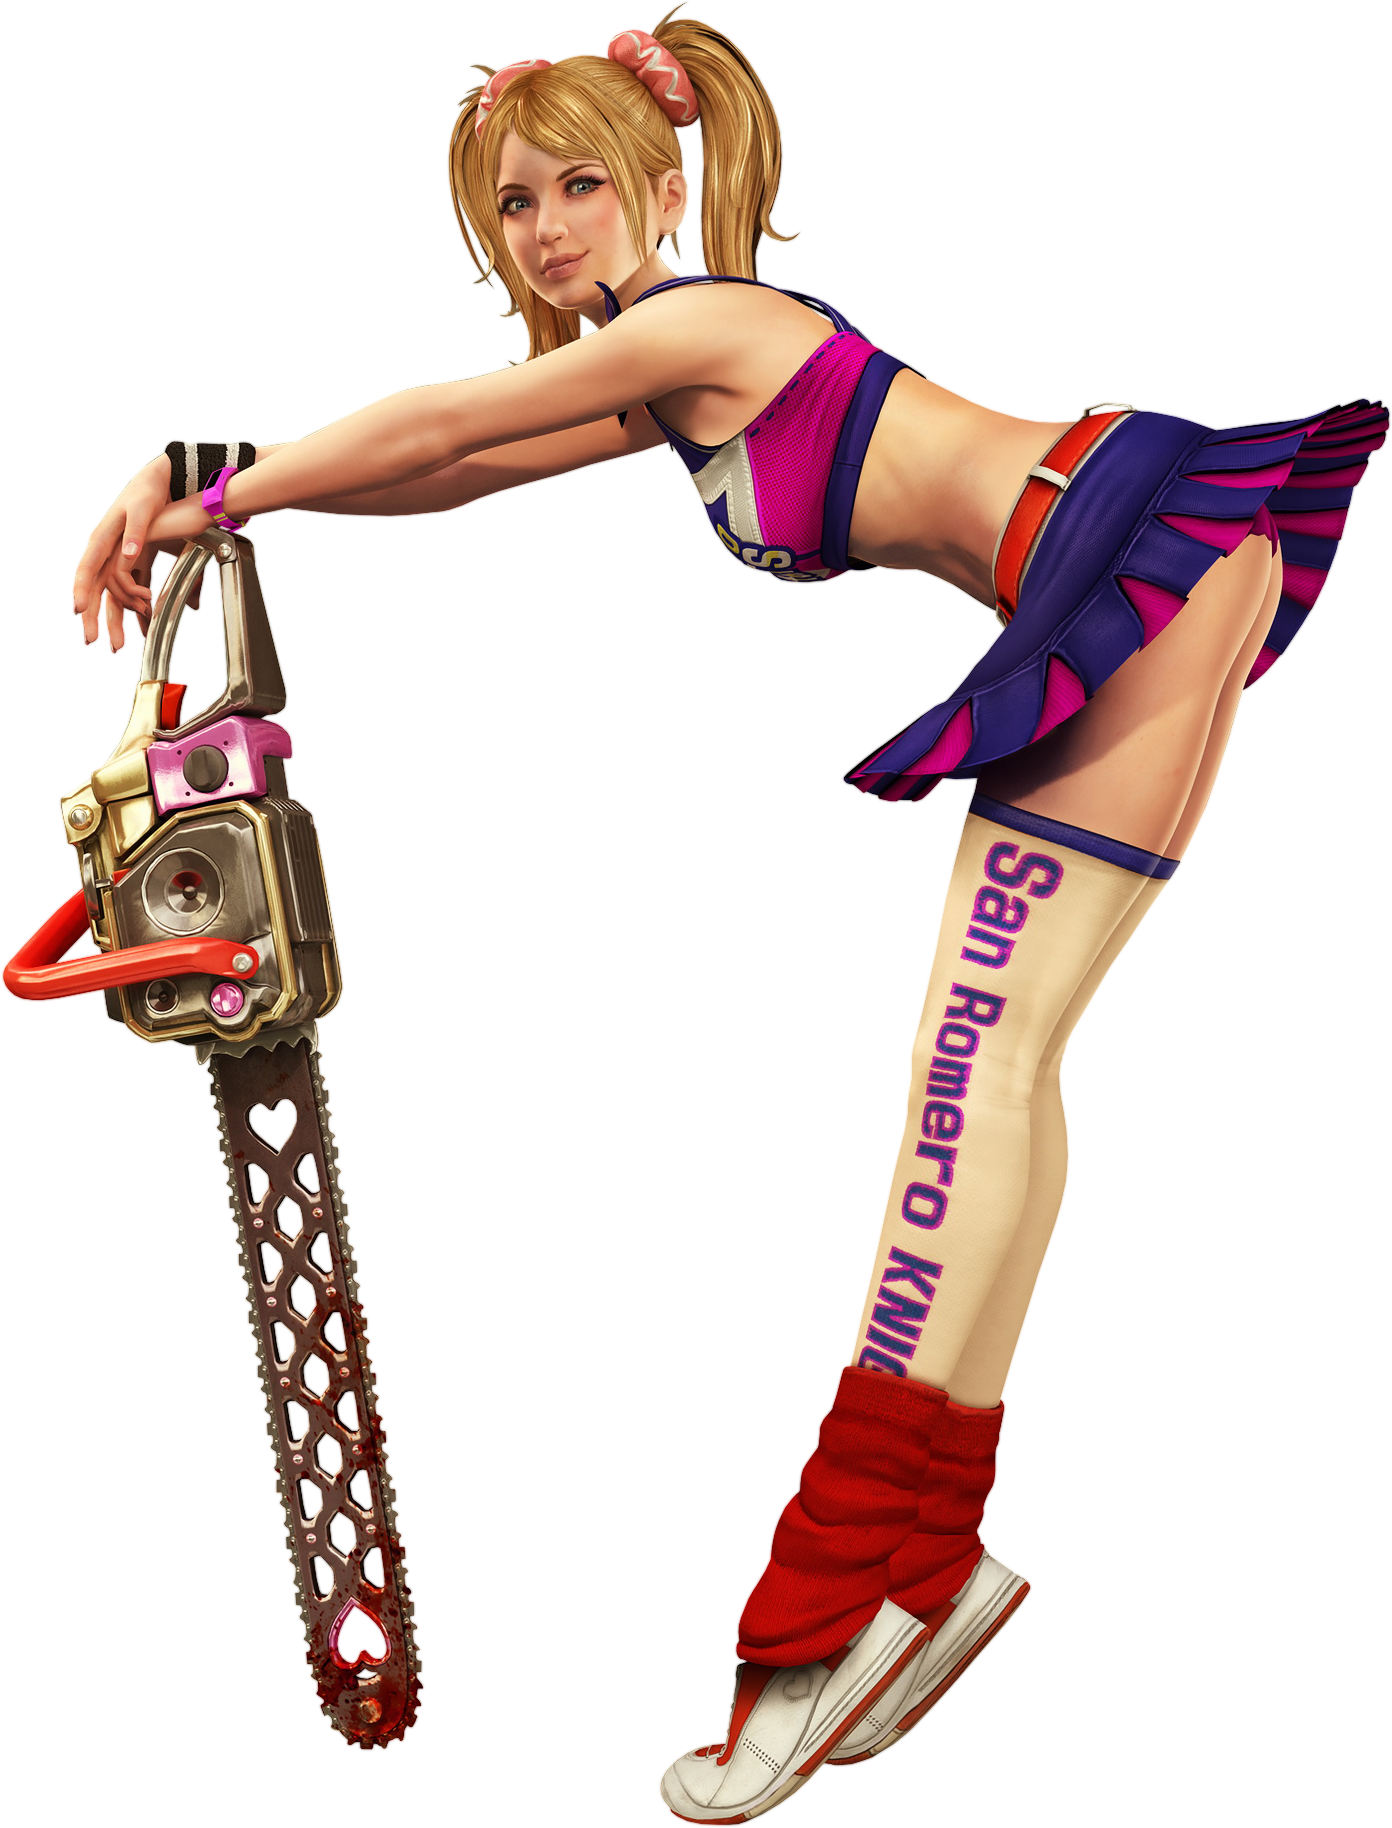 Lollipop Chainsaw - Juliet Starling by IvanCEs